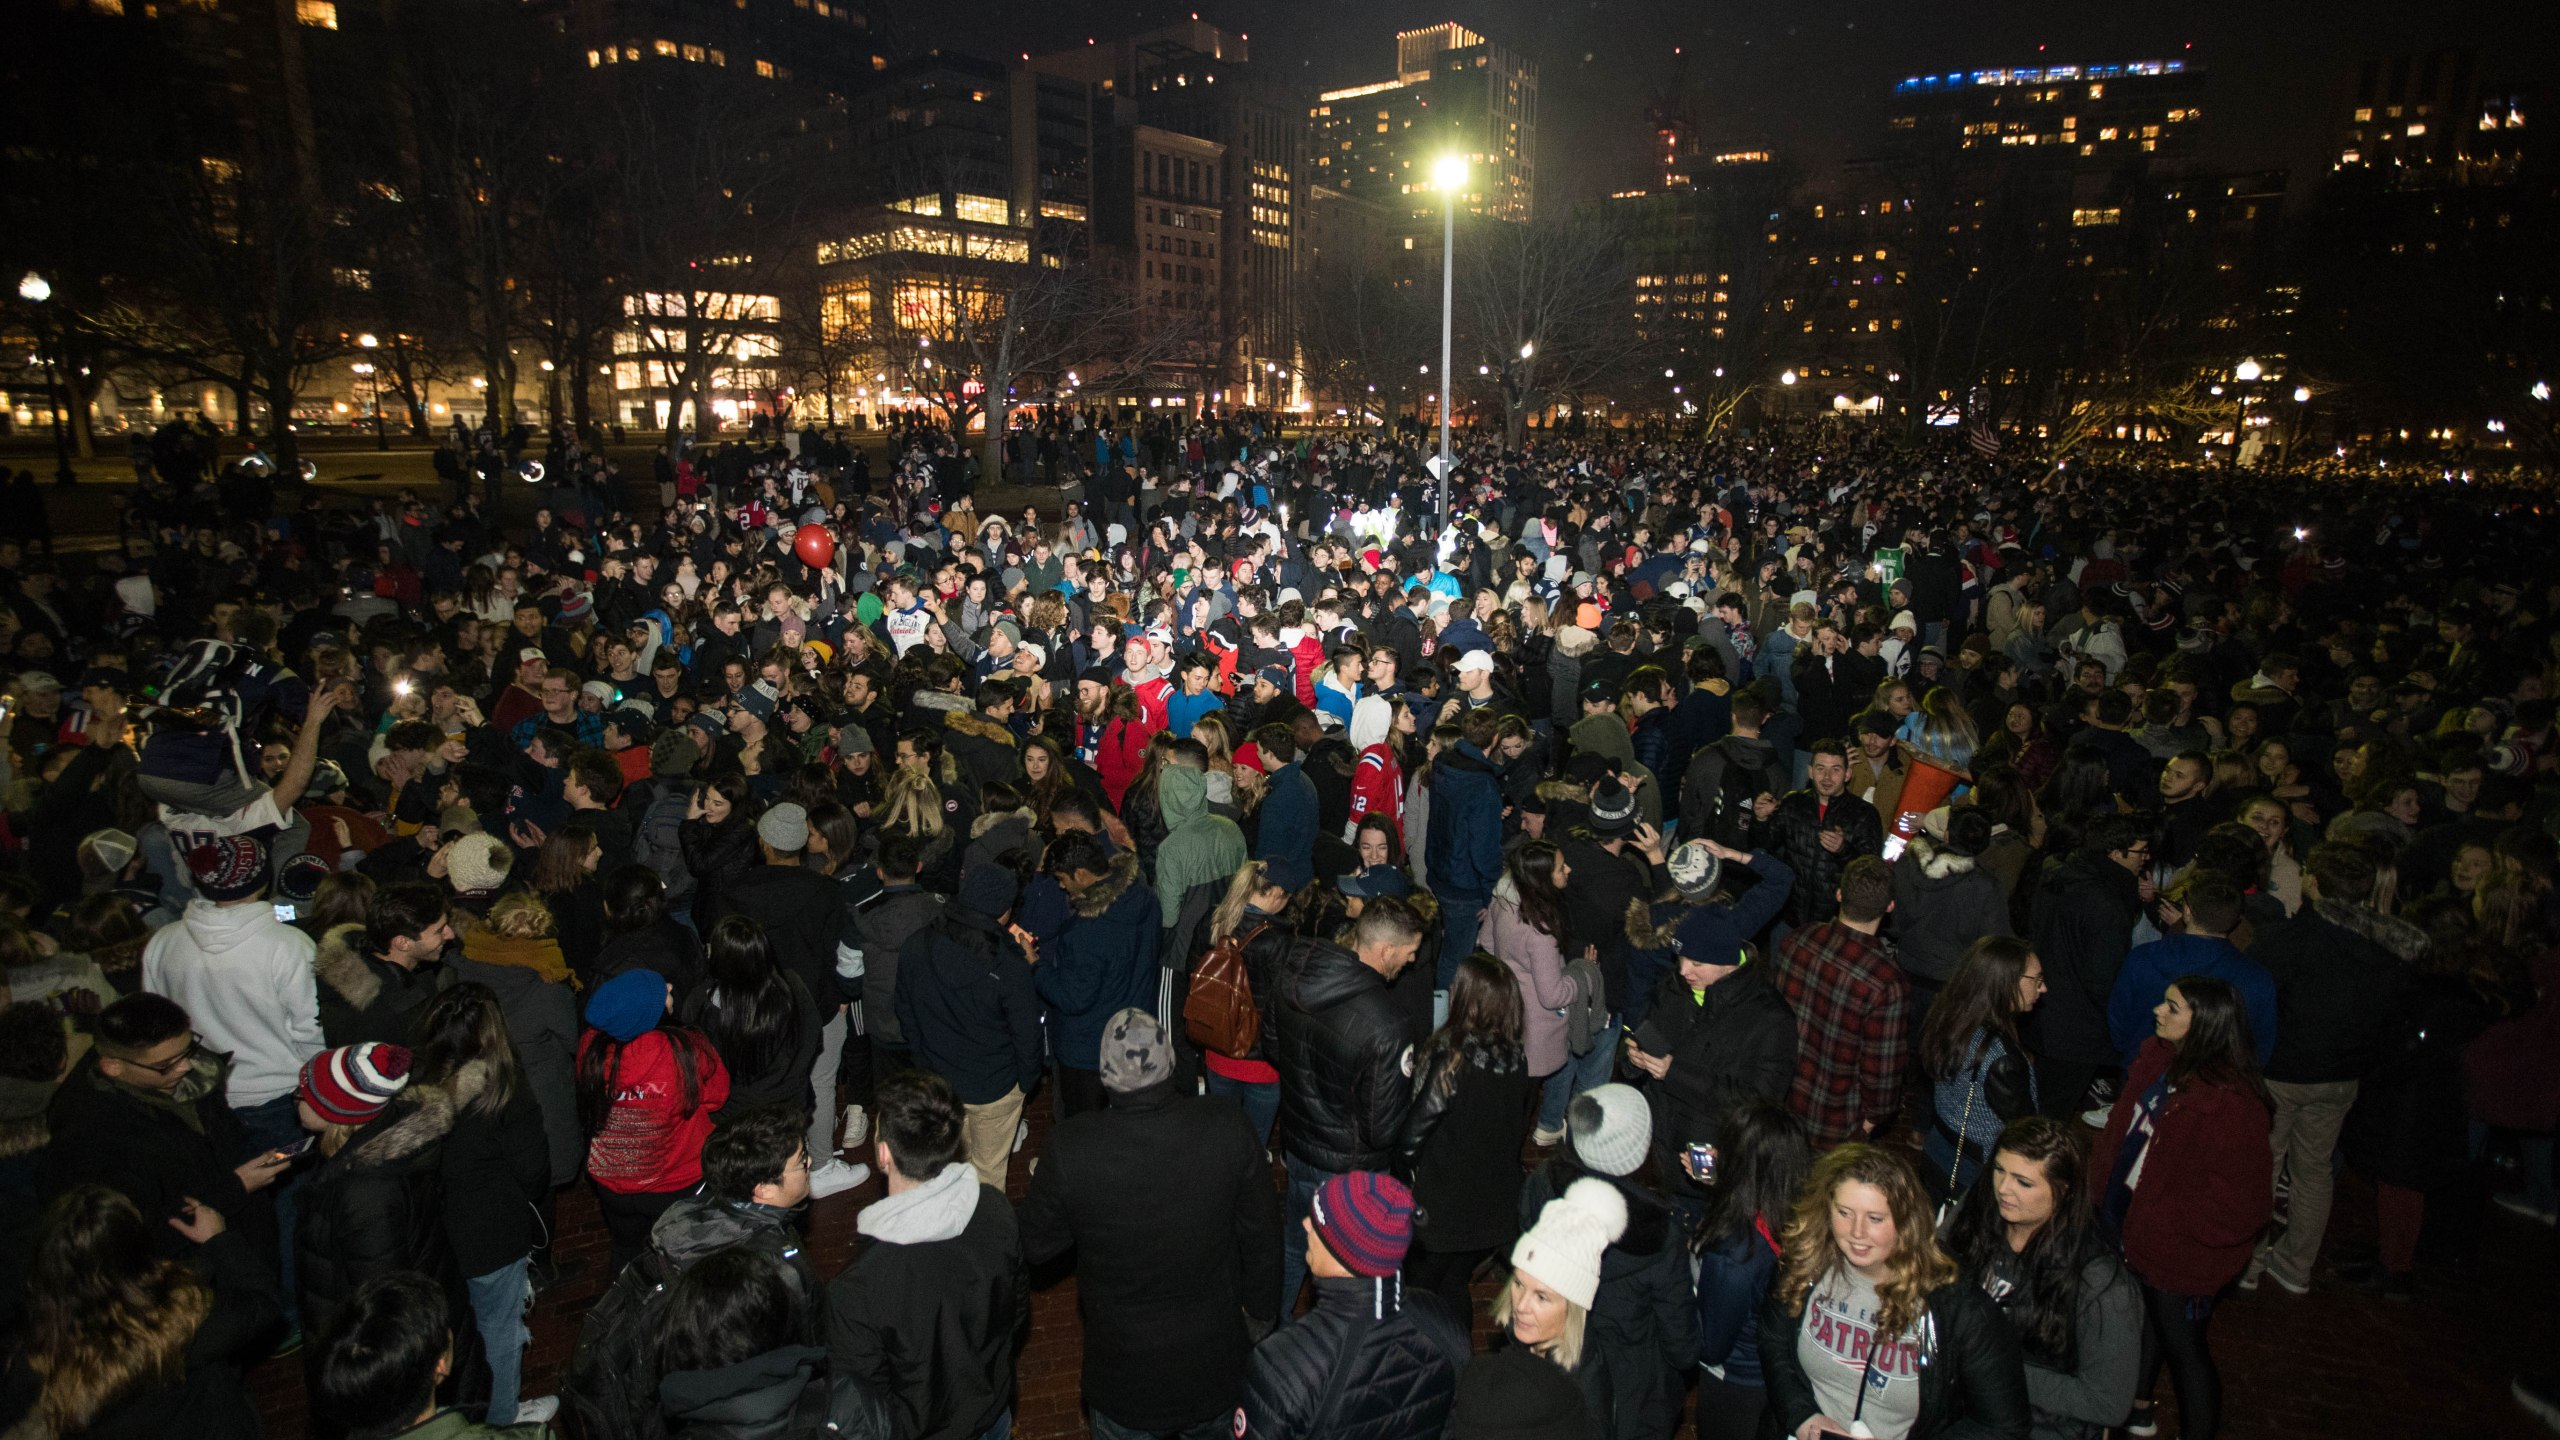 Thousands of New England Patriots fans gather on the Boston Common after the New England Patriots beat the Los Angeles Rams in Super Bowl LIII on February 3, 2019. (Credit: Scott Eisen/Getty Images)